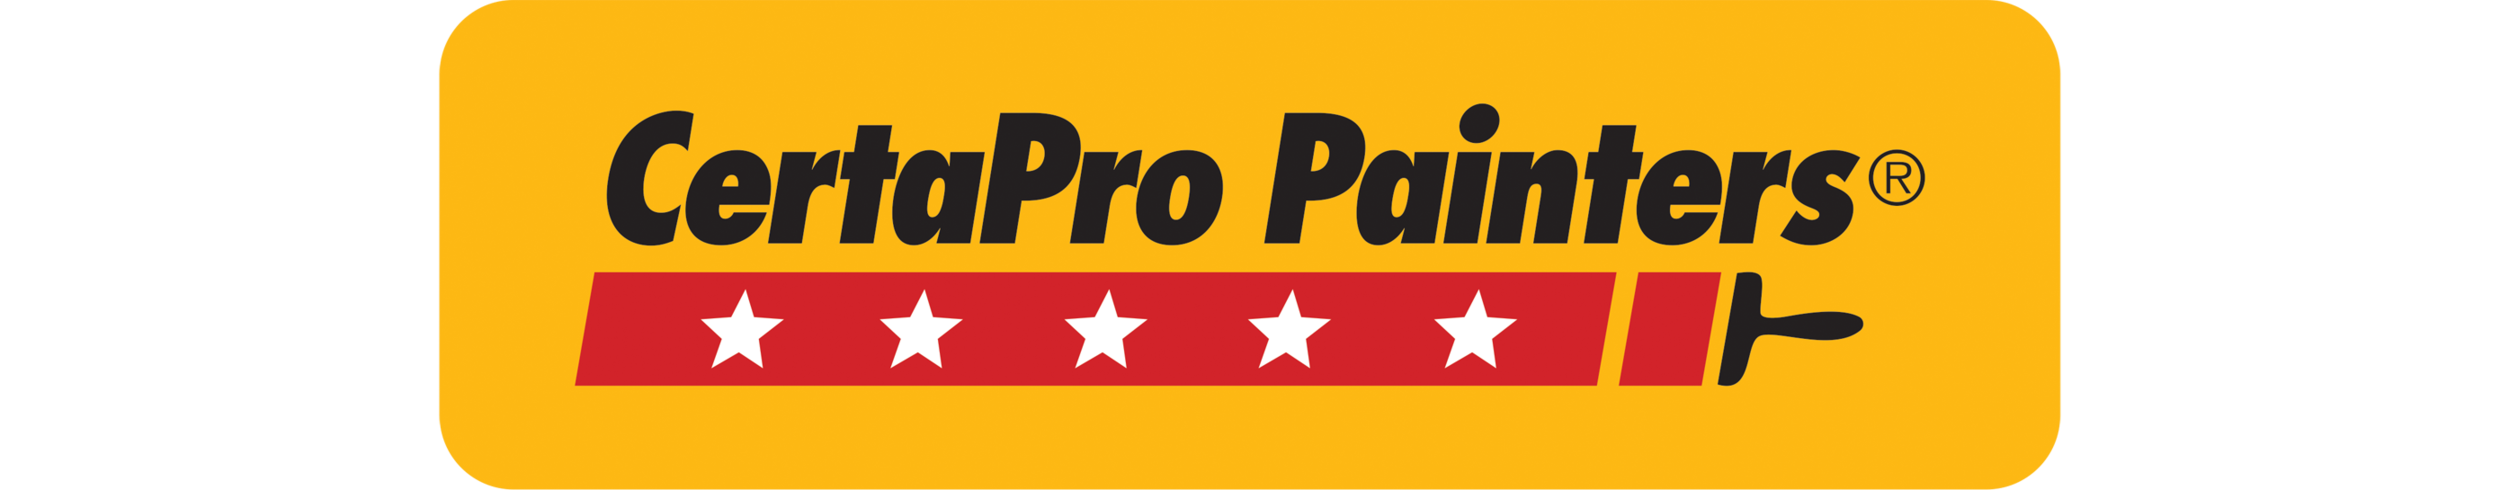 CertaPro Painters (mobile).png